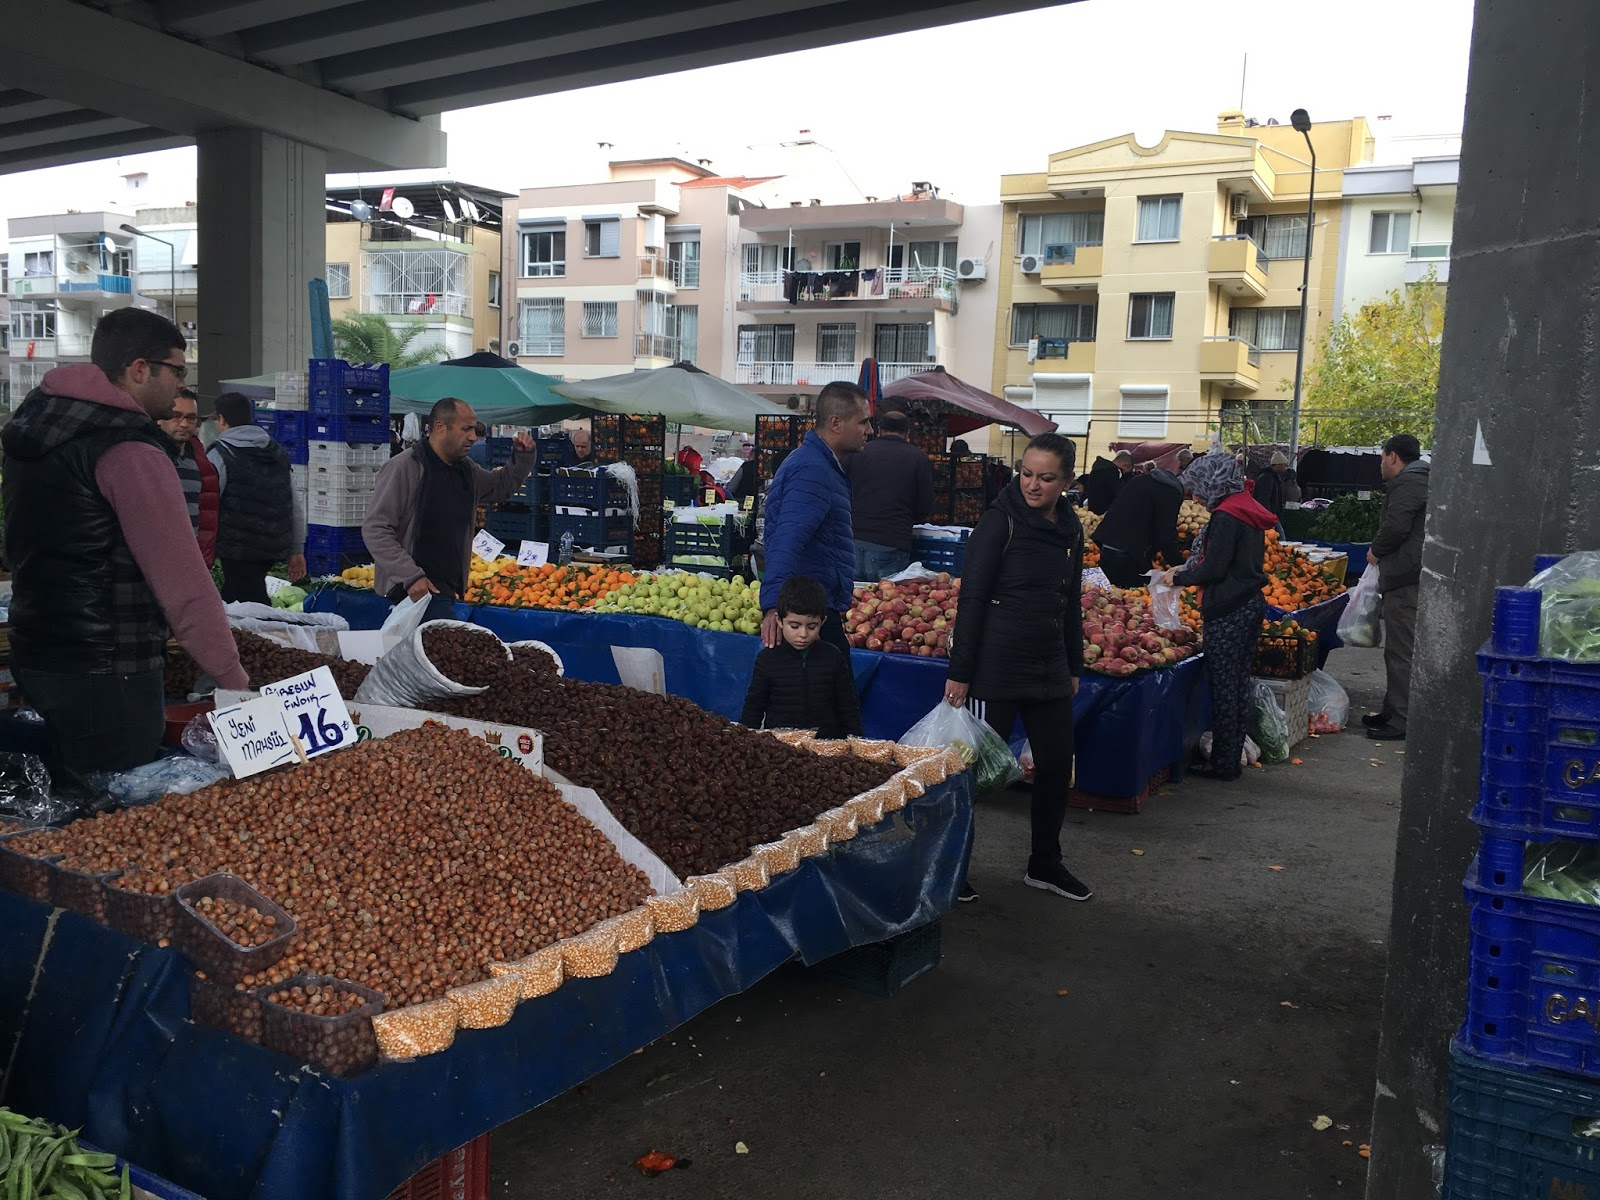 LeeZe visits Izmir Sunday farmer's market. Nuts and popcorn with citrus in the background.